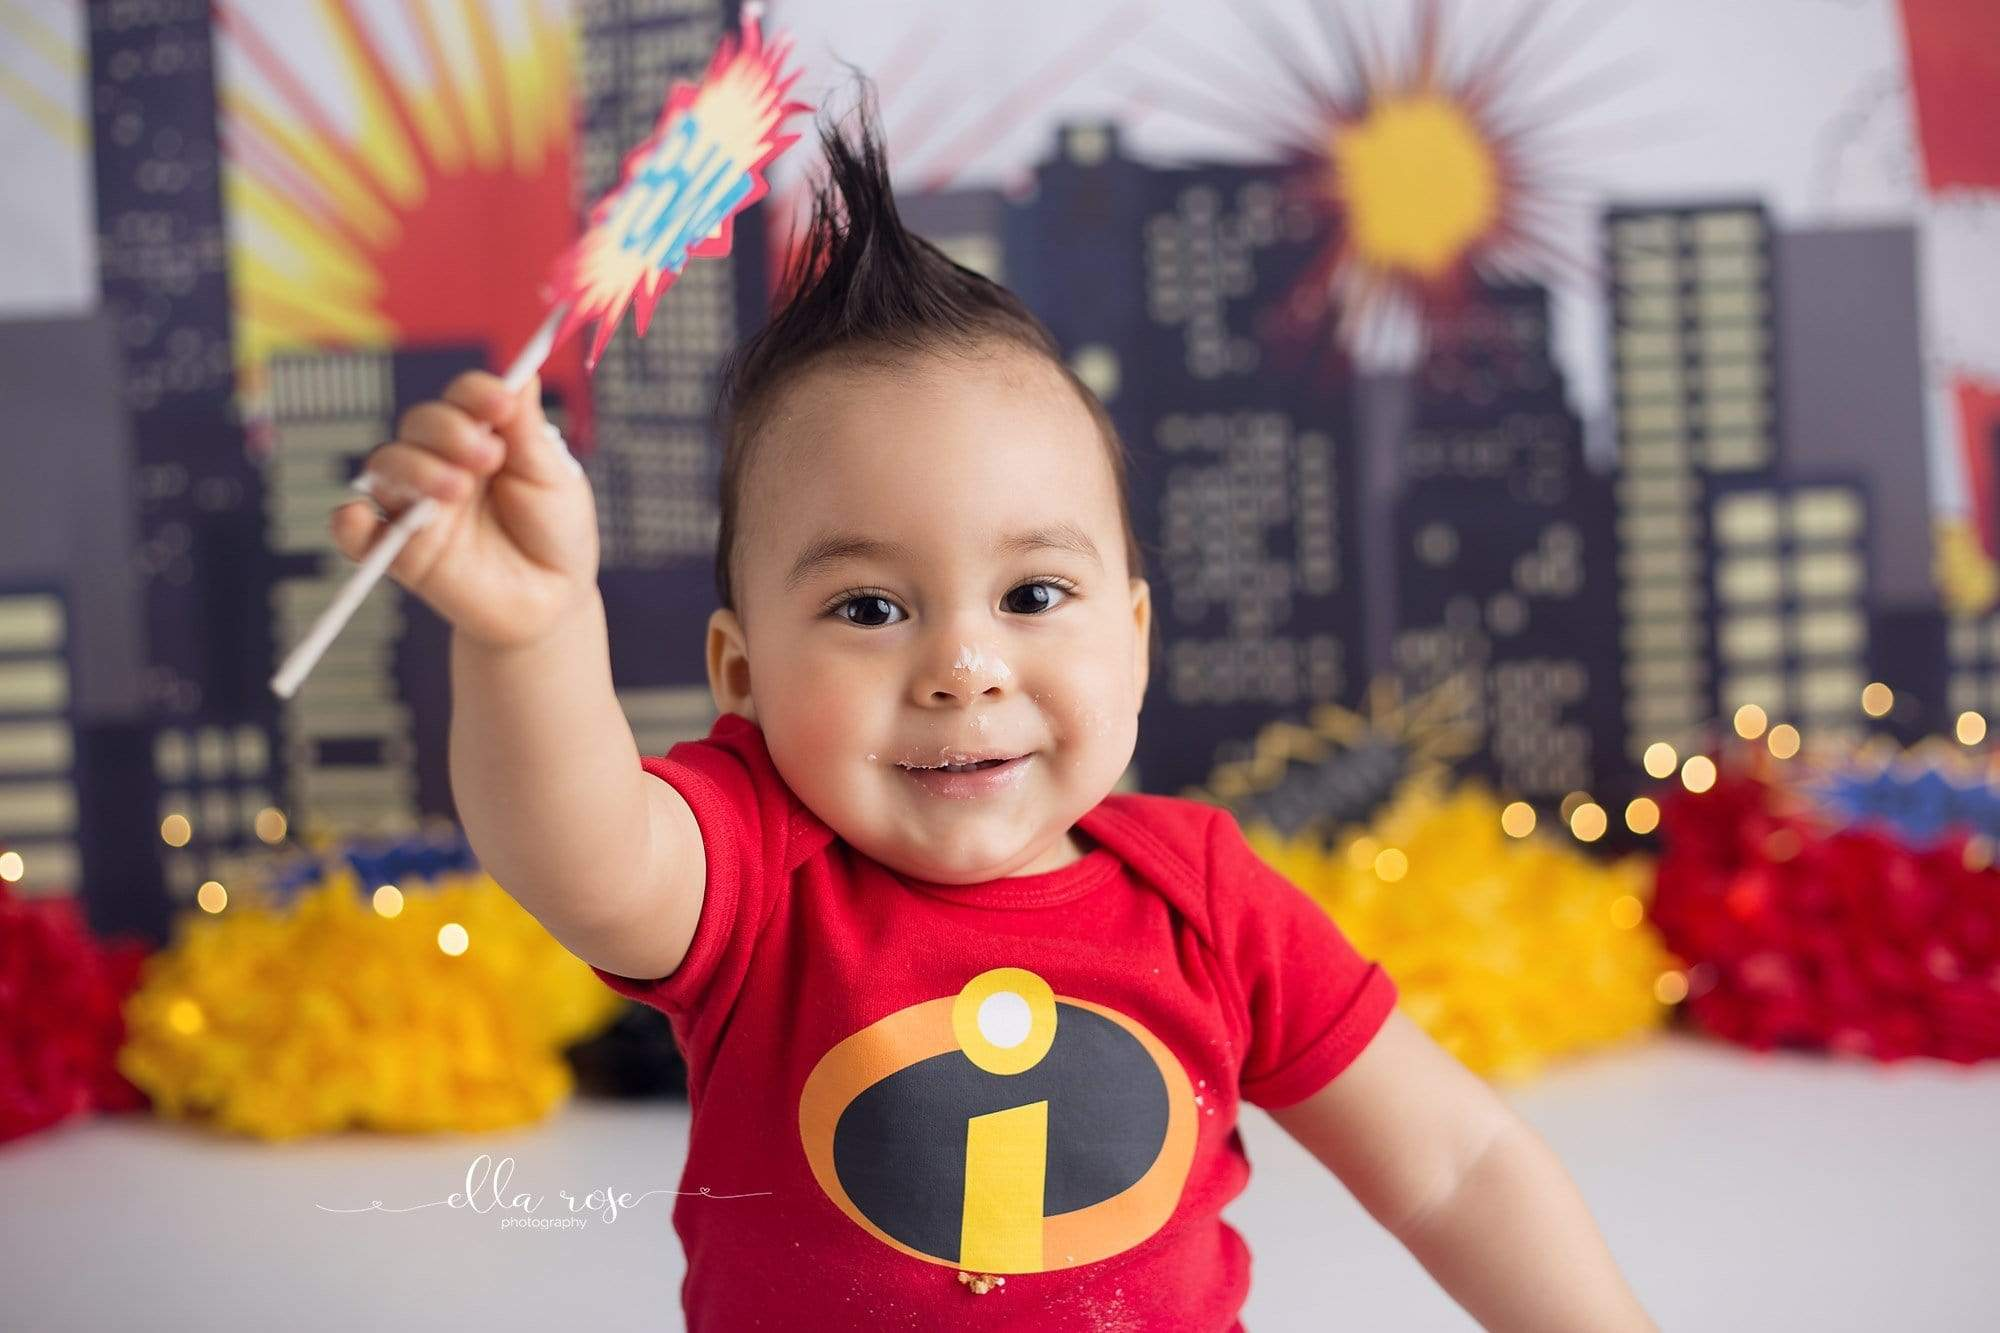 Load image into Gallery viewer, Katebackdrop:Kate Pow Children Super Hero City Photography Backdrops